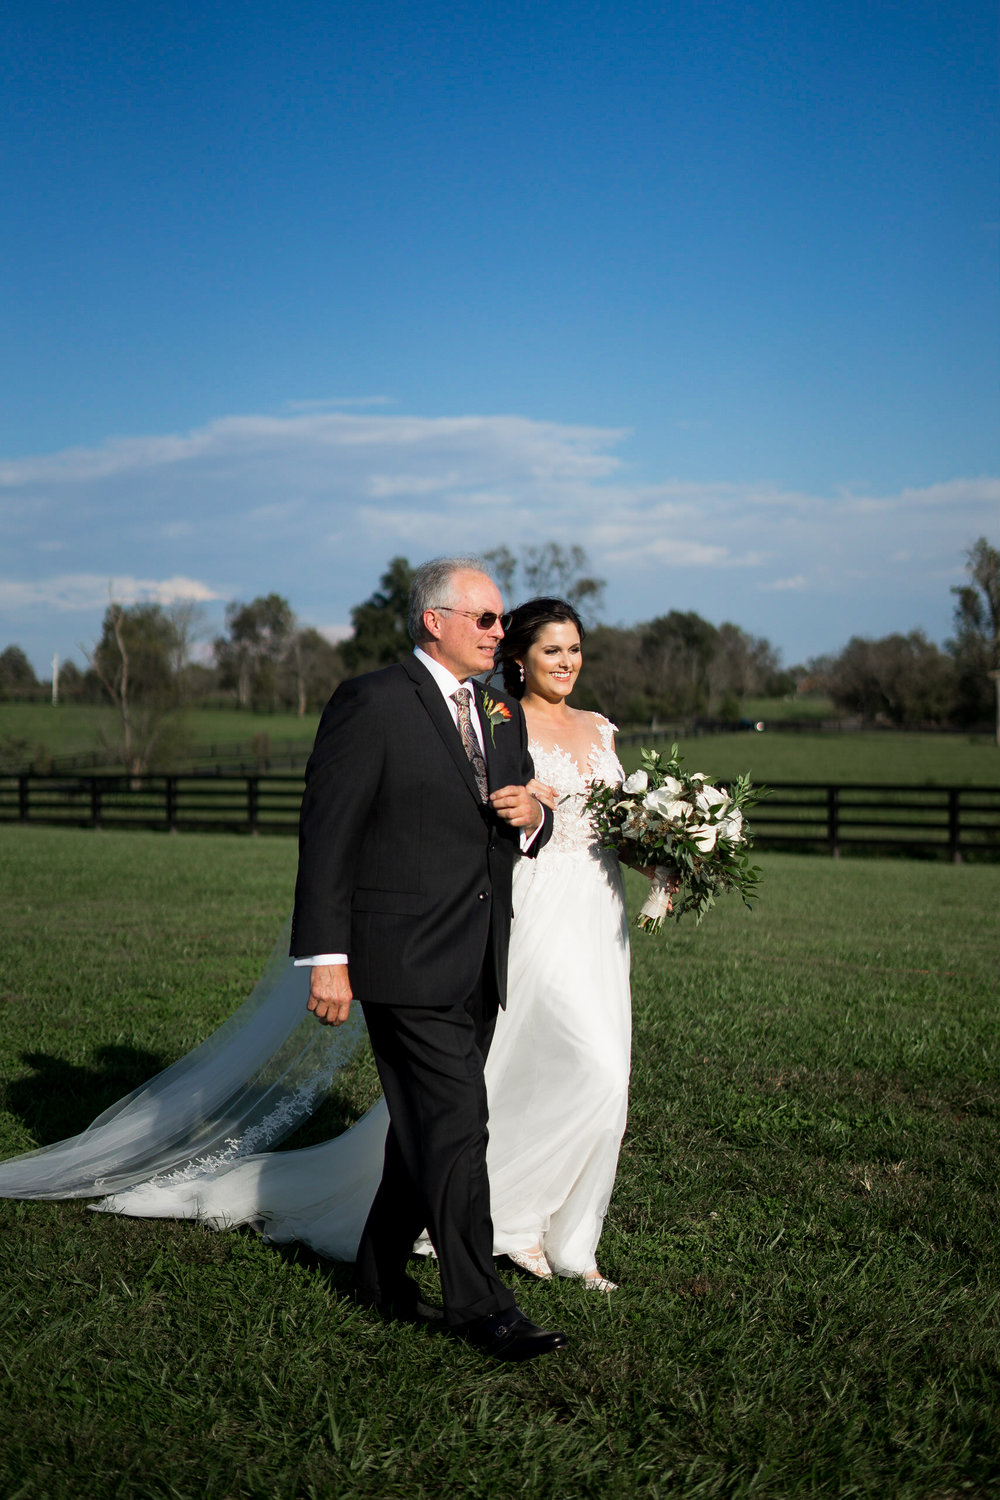 Evans-Orchard-Lexington-Kentucky-Fall-Wedding-18.jpg